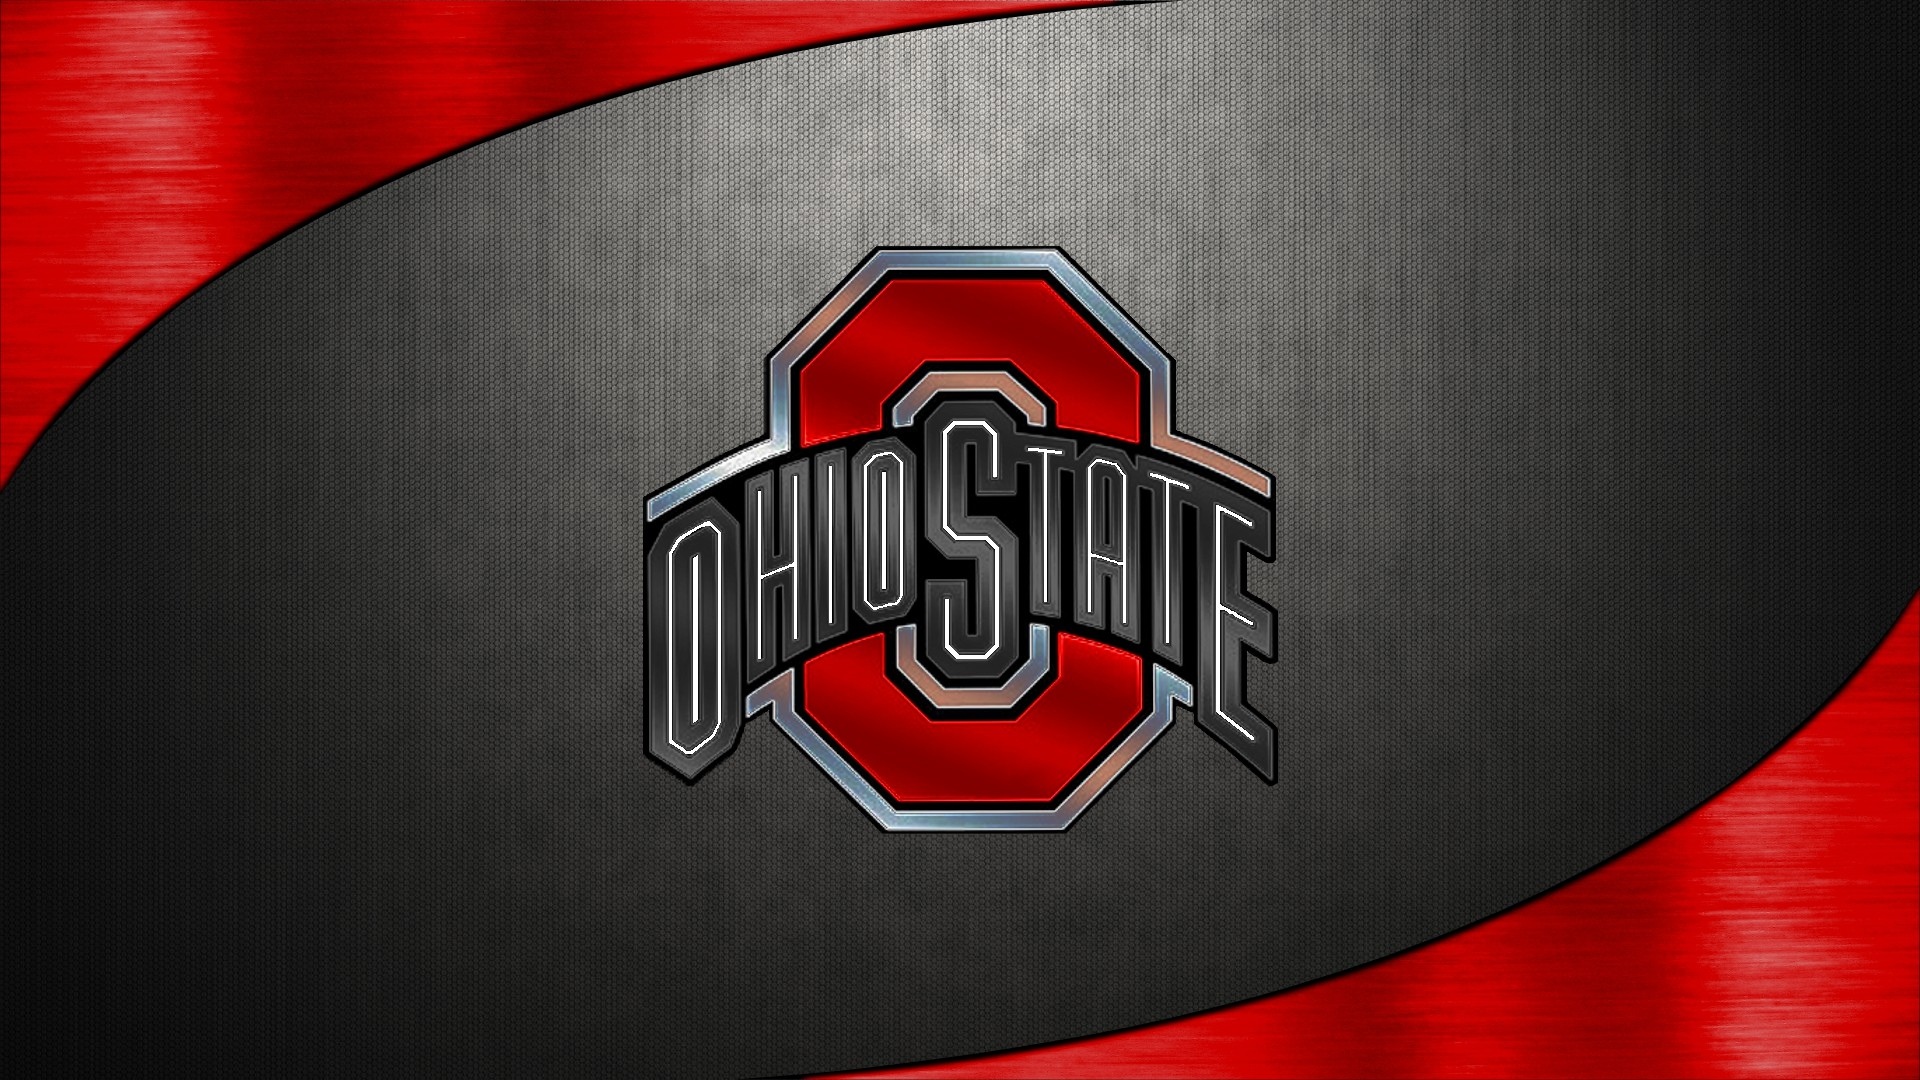 … HD Free Download College Football Iphone Wallpaper Movies Widescreen  Wallpapers 1920×1080 pixels Pick Any College